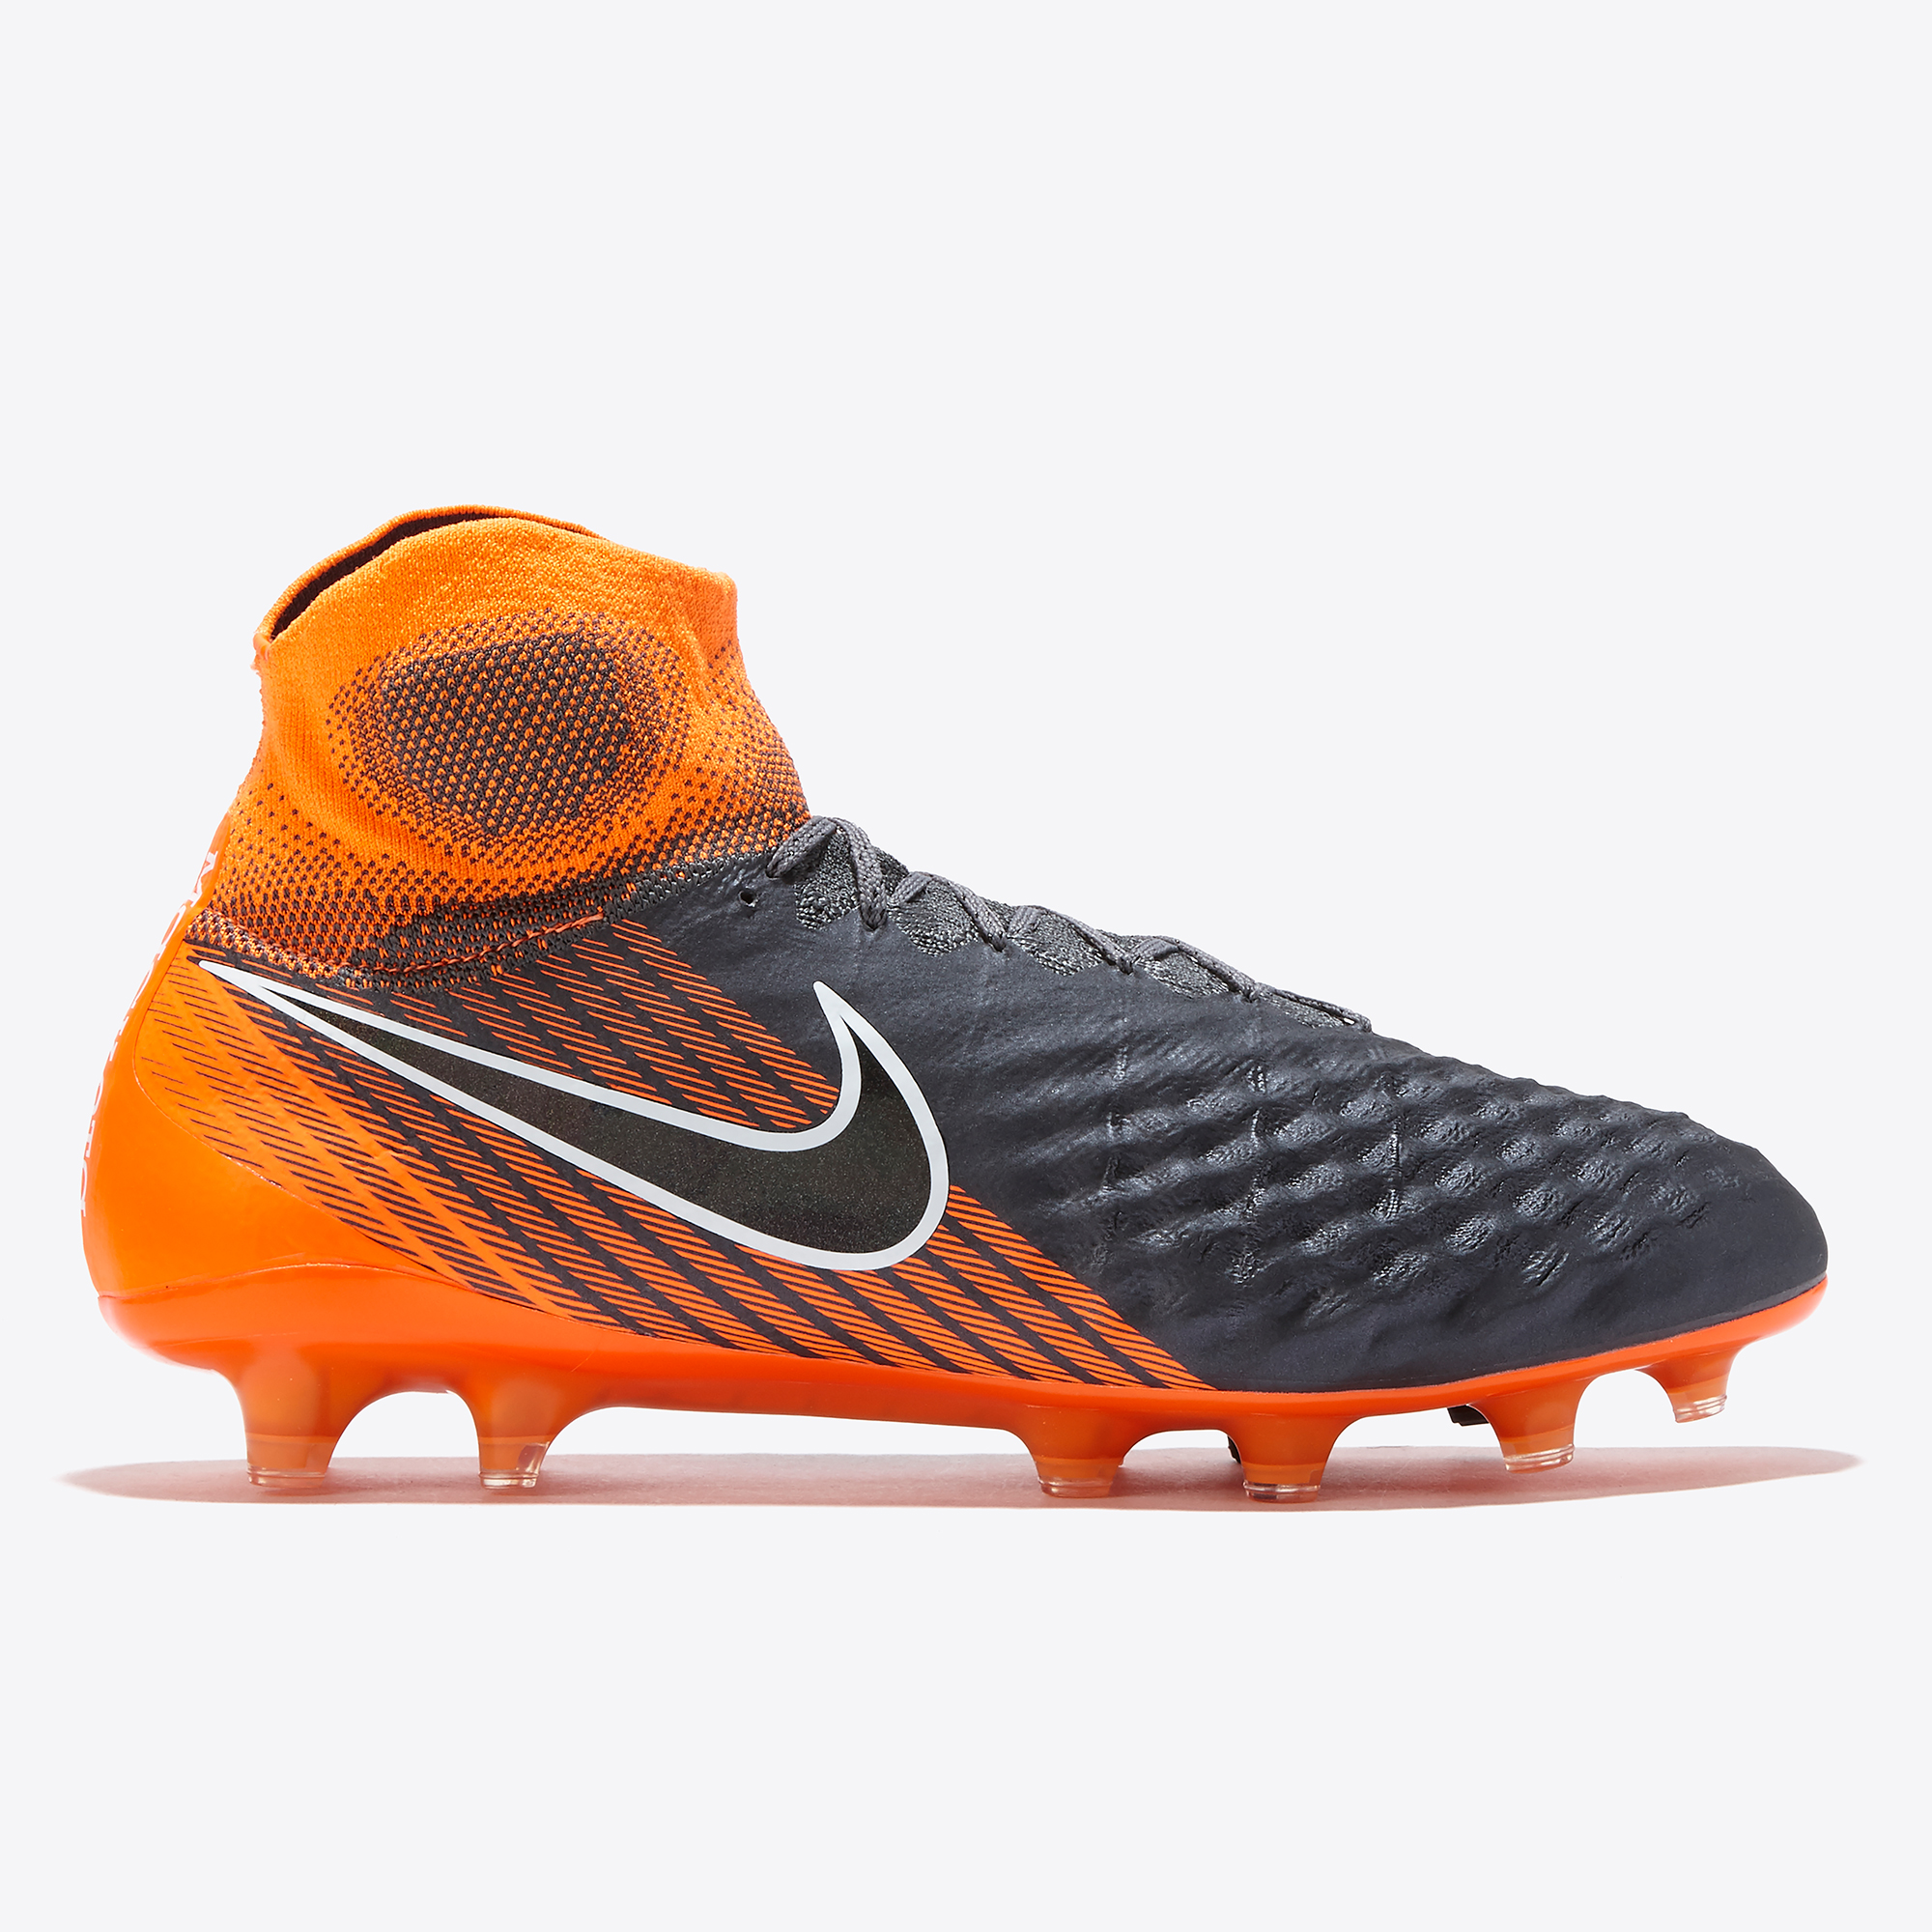 91ffe7a7059f Nike Magista Obra II Elite Dynamic Fit FG Firm-Ground Football Boot - Grey